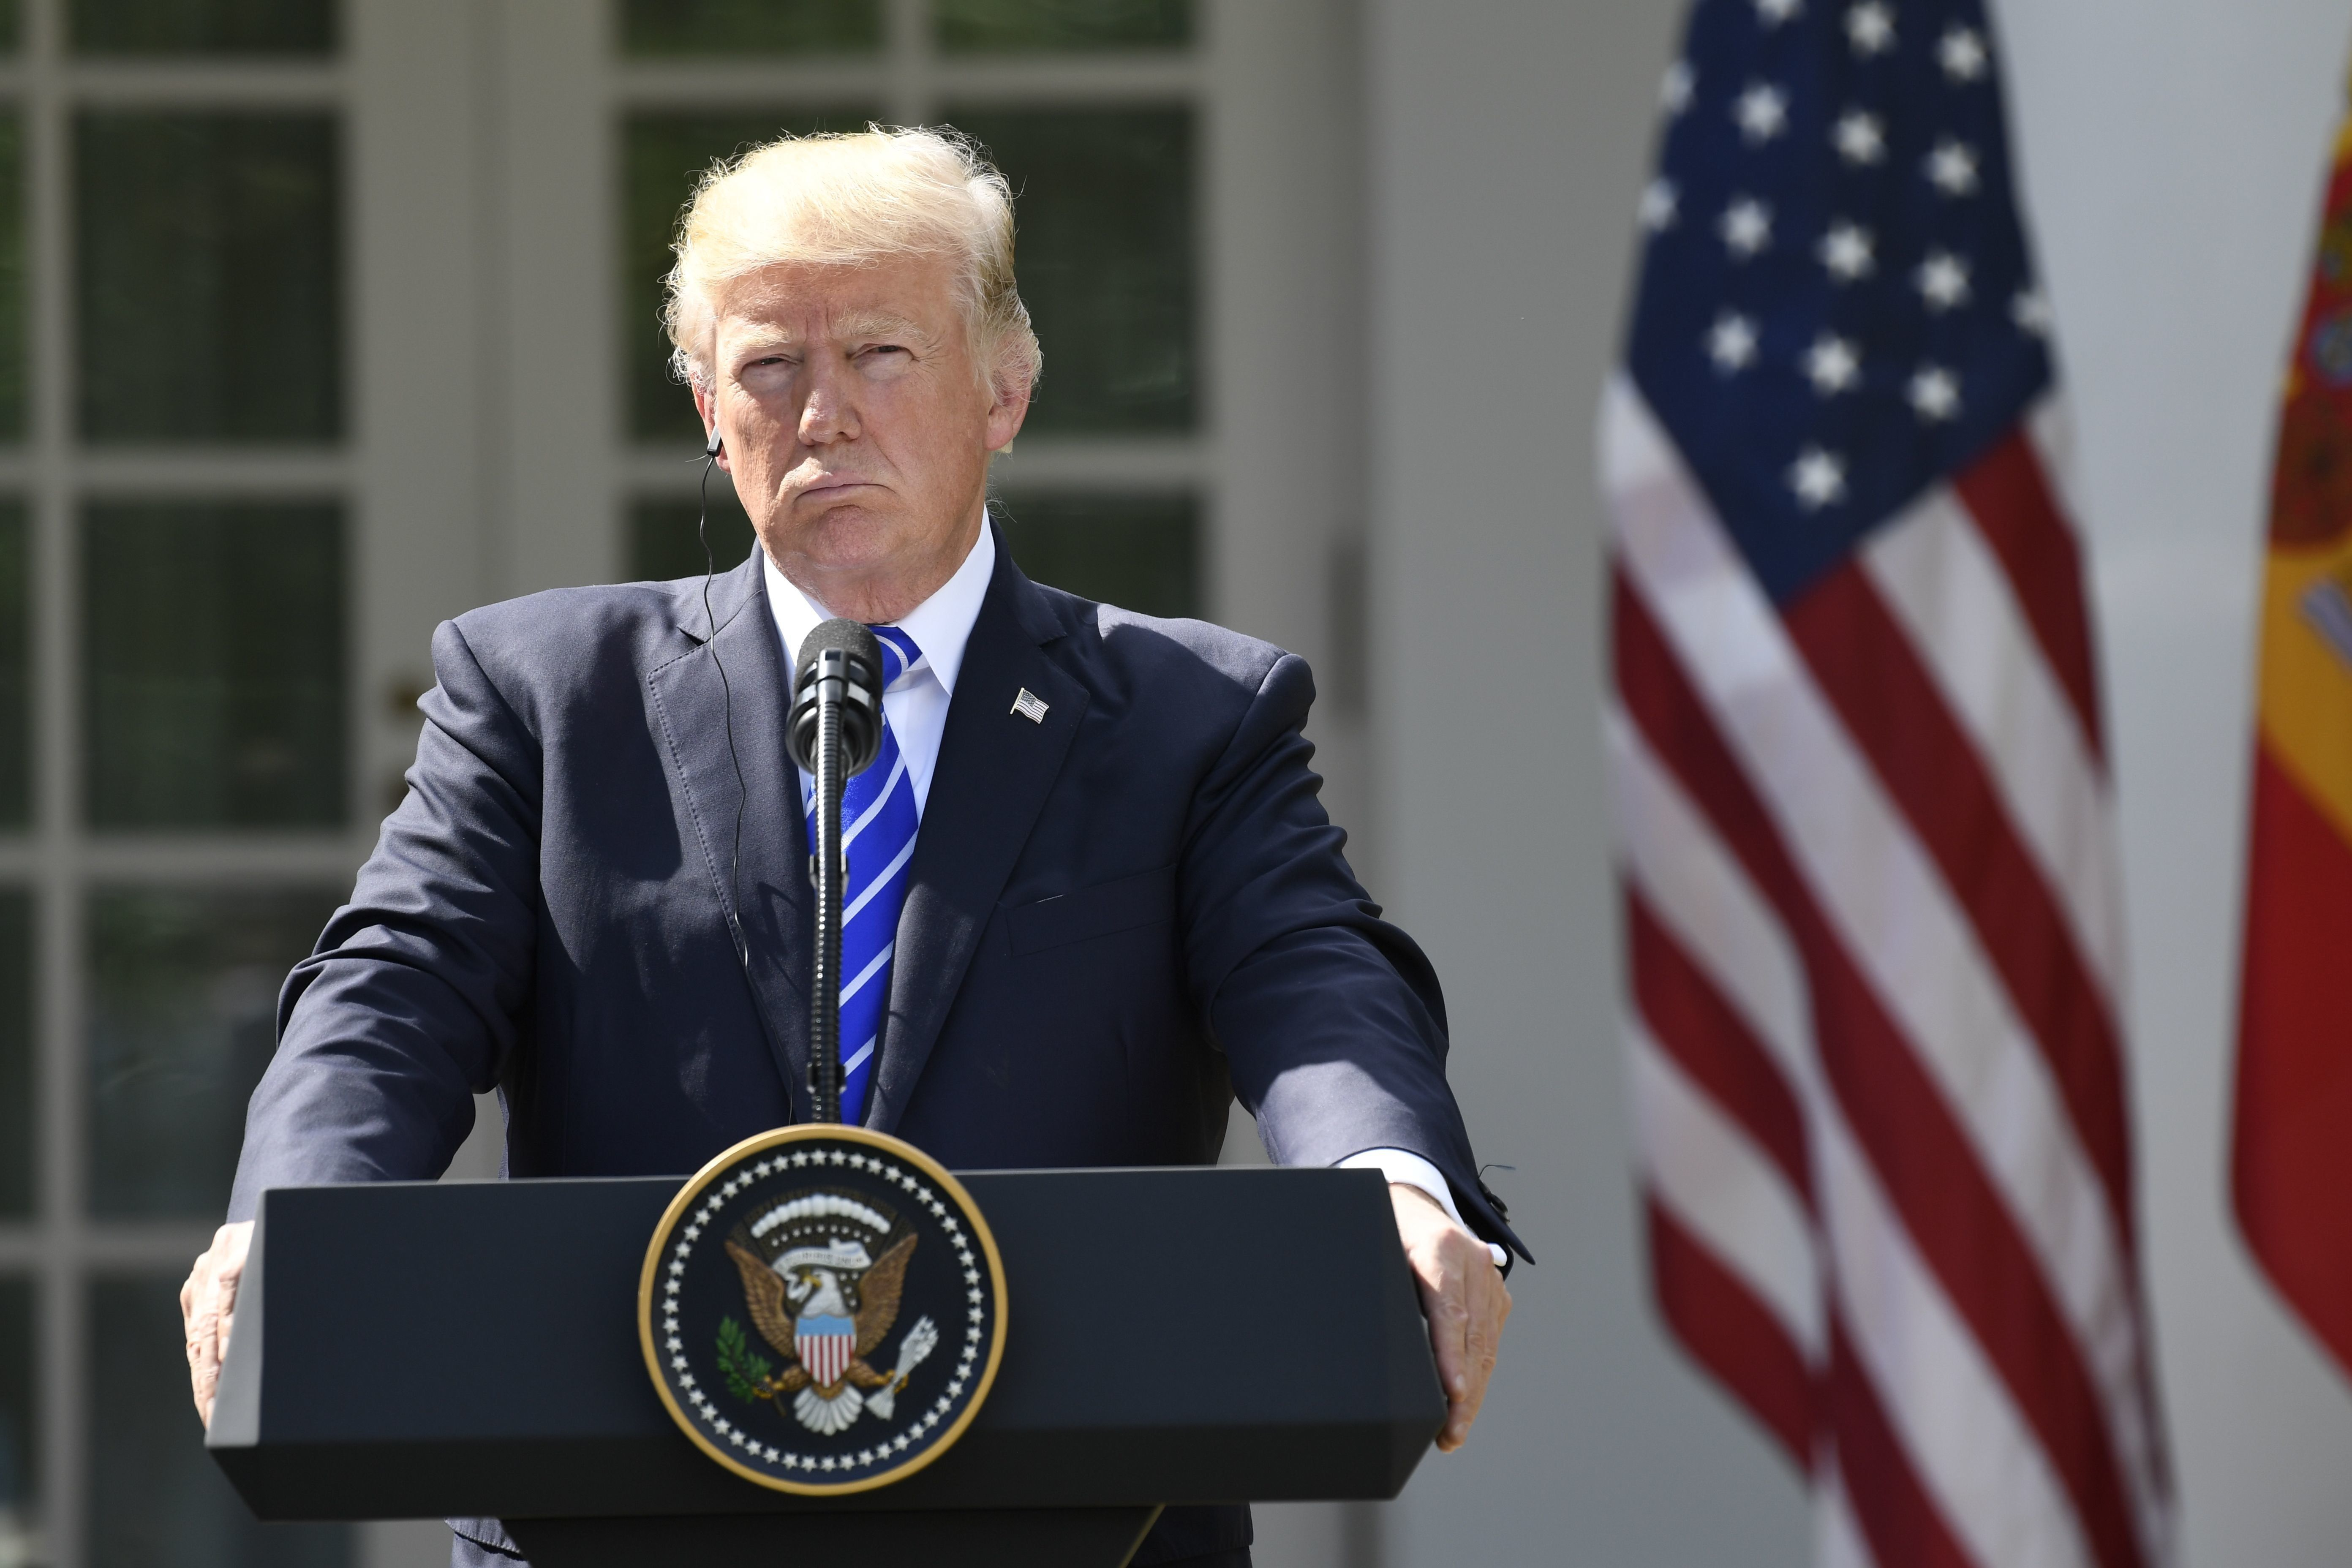 US President Donald Trump holds a joint press conference with Spanish Prime Minister Mariano Rajoy in the Rose Garden of the White House in Washington, DC, September 26, 2017. / AFP PHOTO / SAUL LOEB        (Photo credit should read SAUL LOEB/AFP/Getty Images)